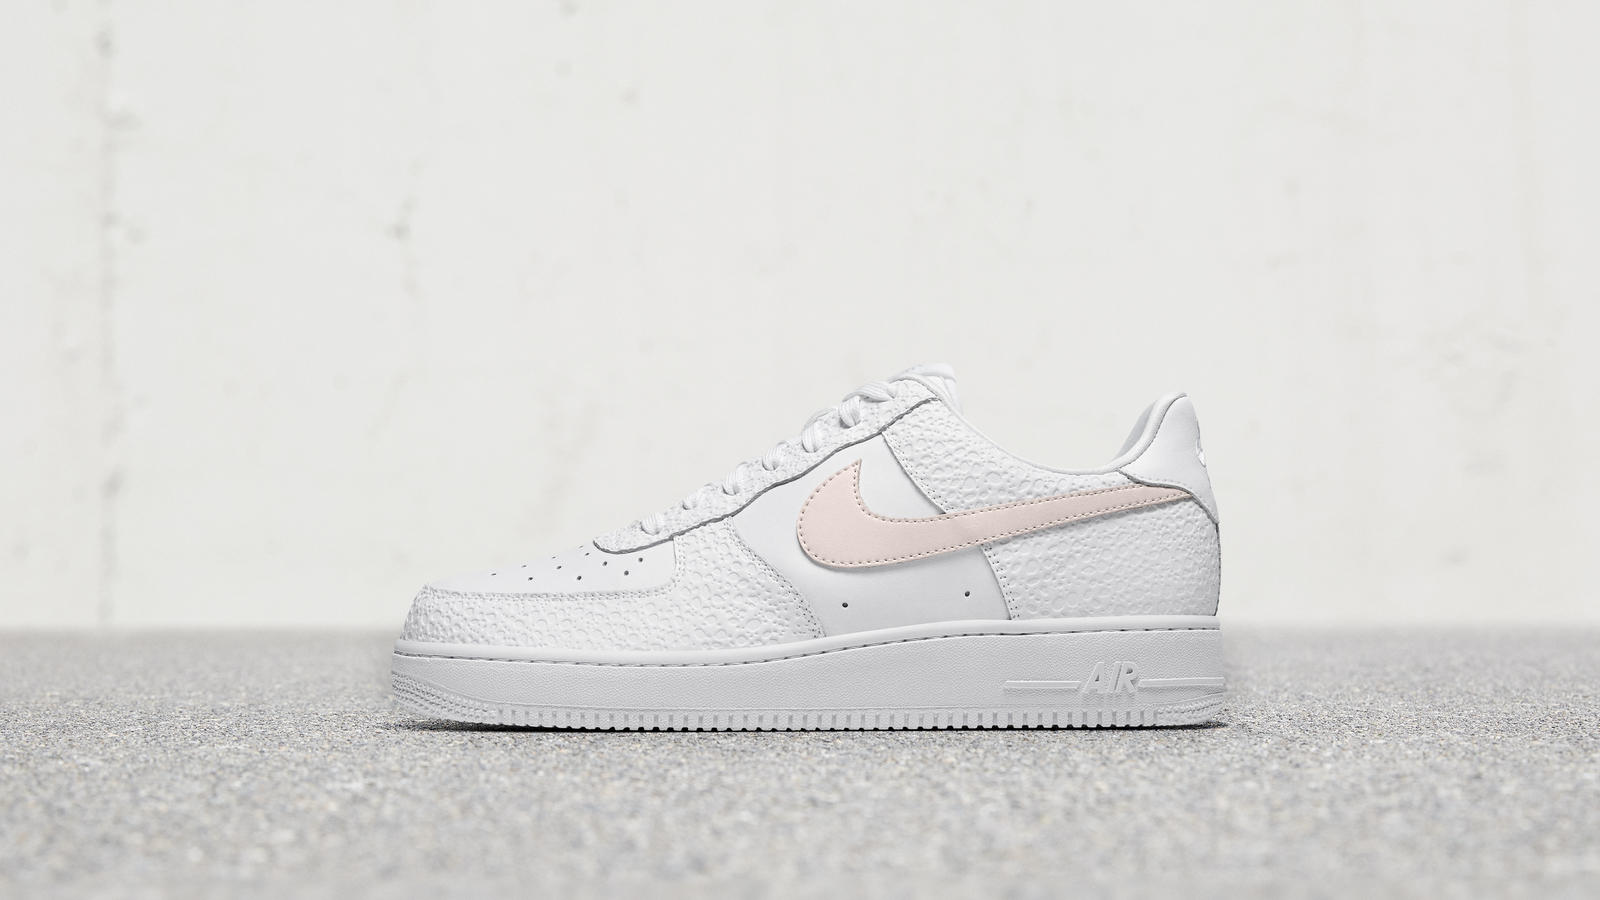 Nike Flyleather Air Force 1 SE 0